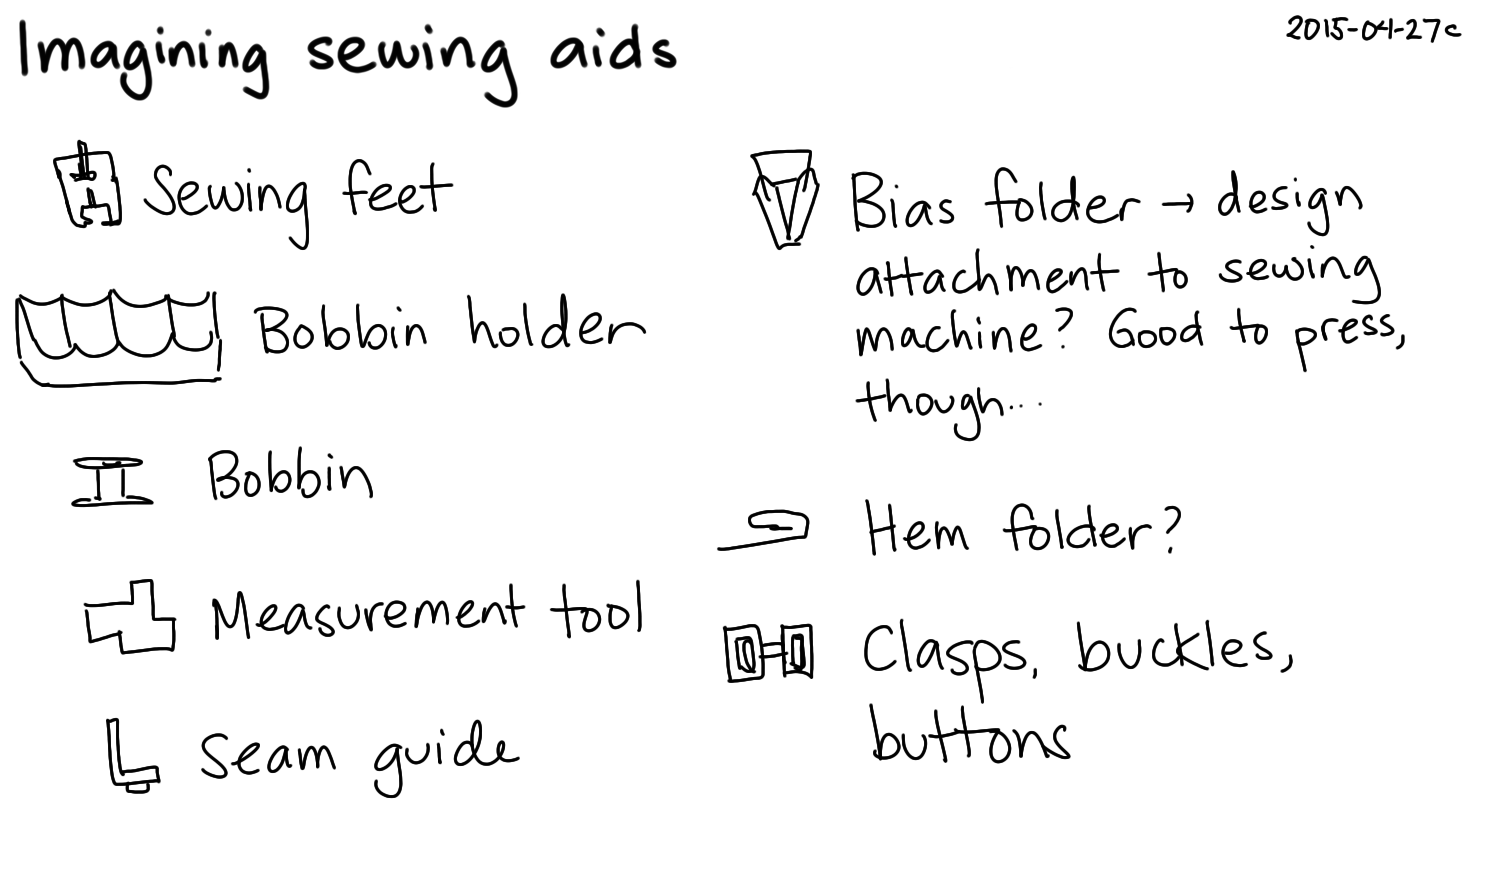 2015-04-27c Imagining sewing aids -- index card #3d-printing #tech-and-home #technodomesticity #sewing.png